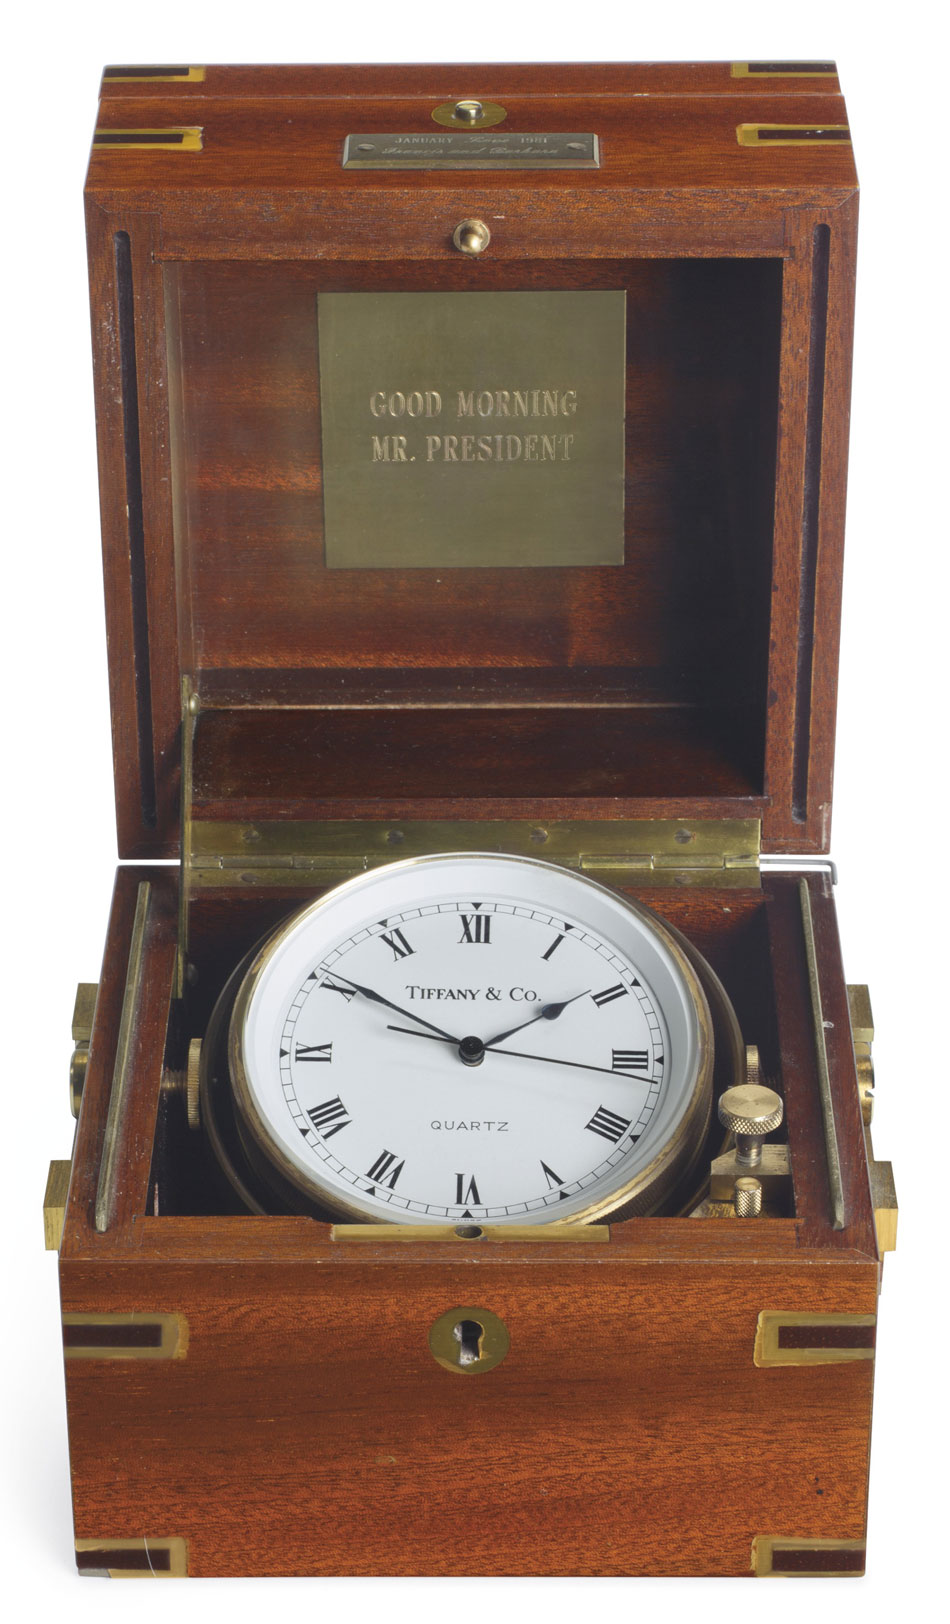 The Sinatras presented the chronometer to the Reagans as an inaugural gift on January 20, 1981.